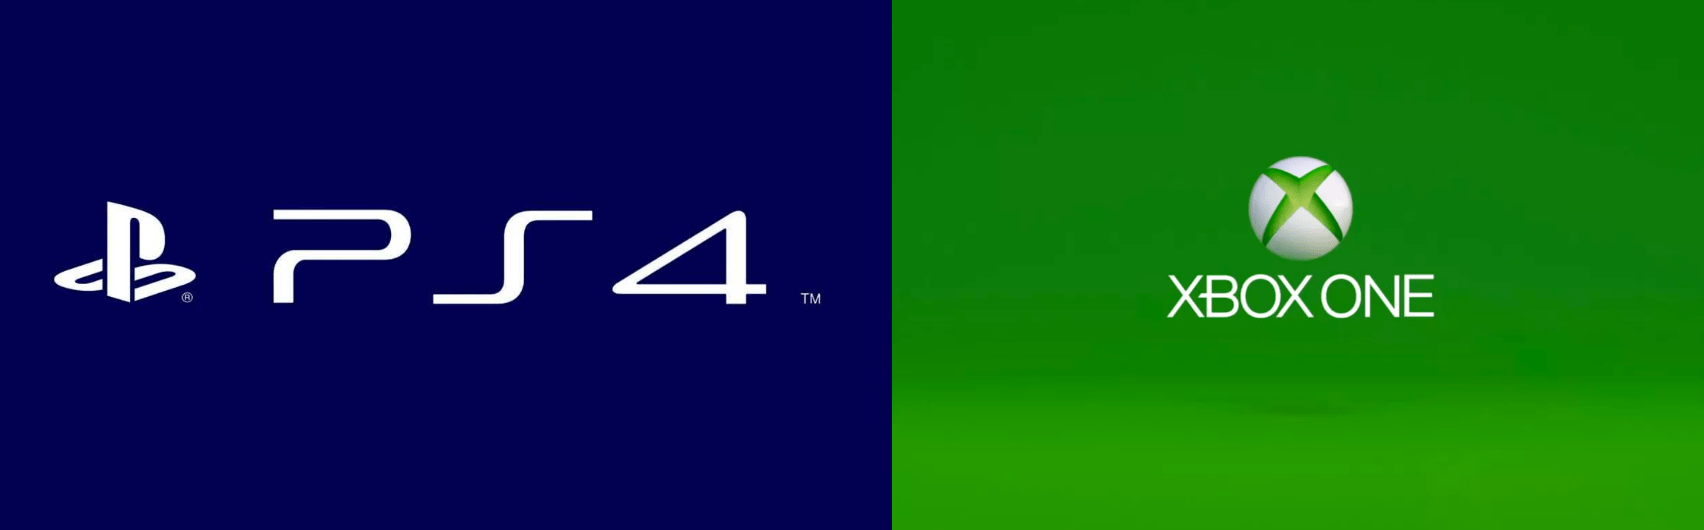 PlayStation 4 vs Xbox One, guerra a final de generación